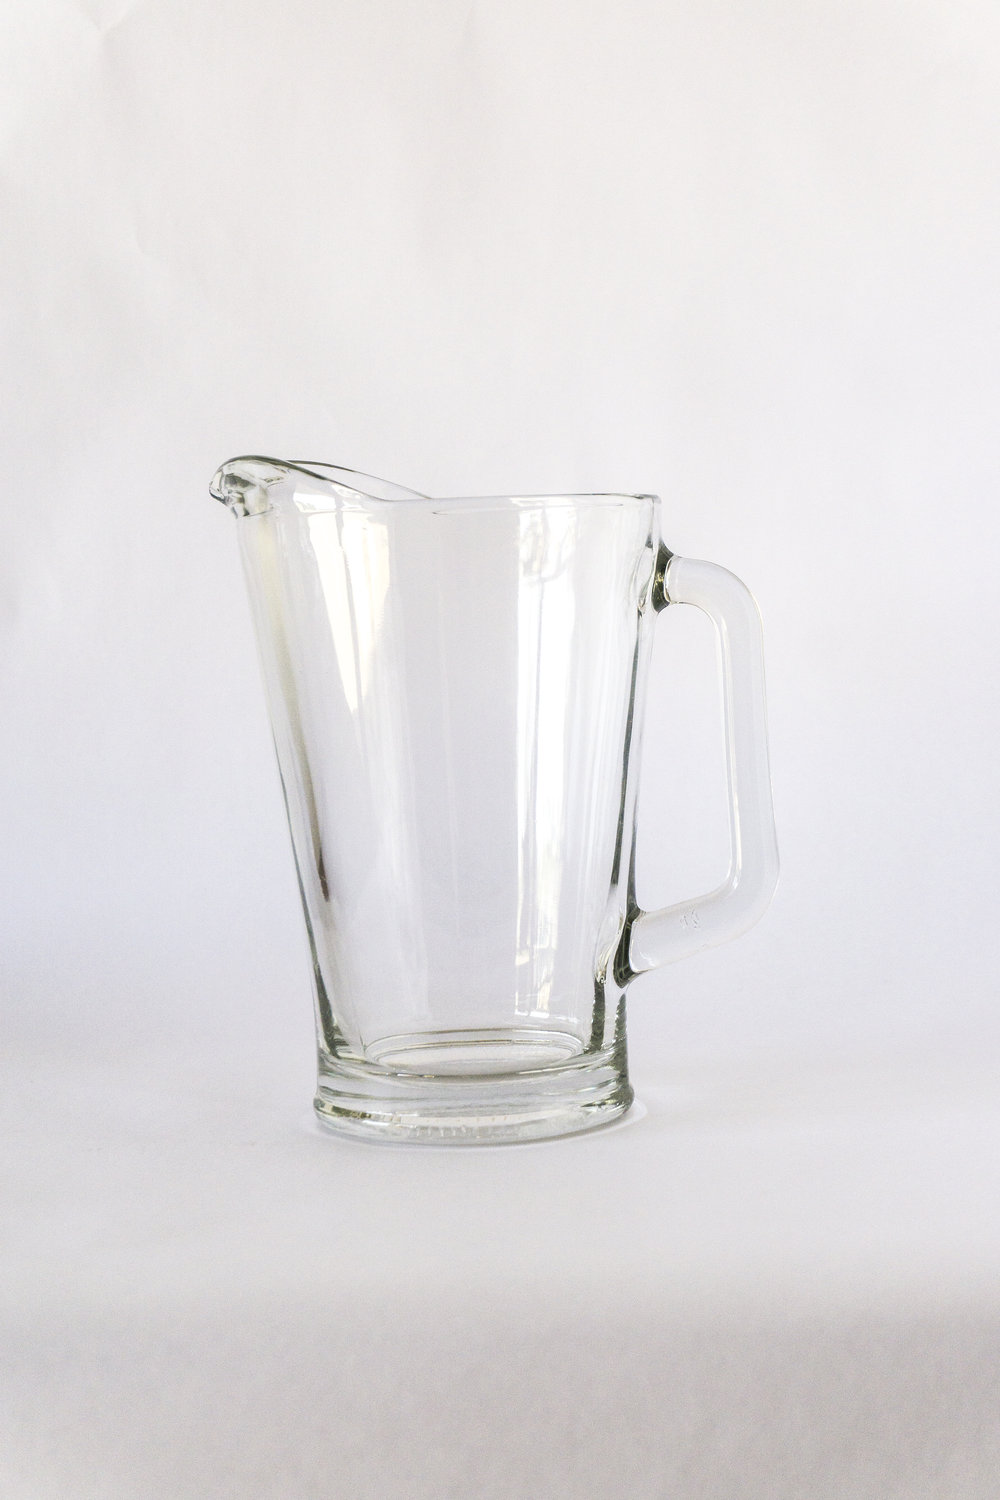 Glass Water Pitcher  60 oz  $2.50